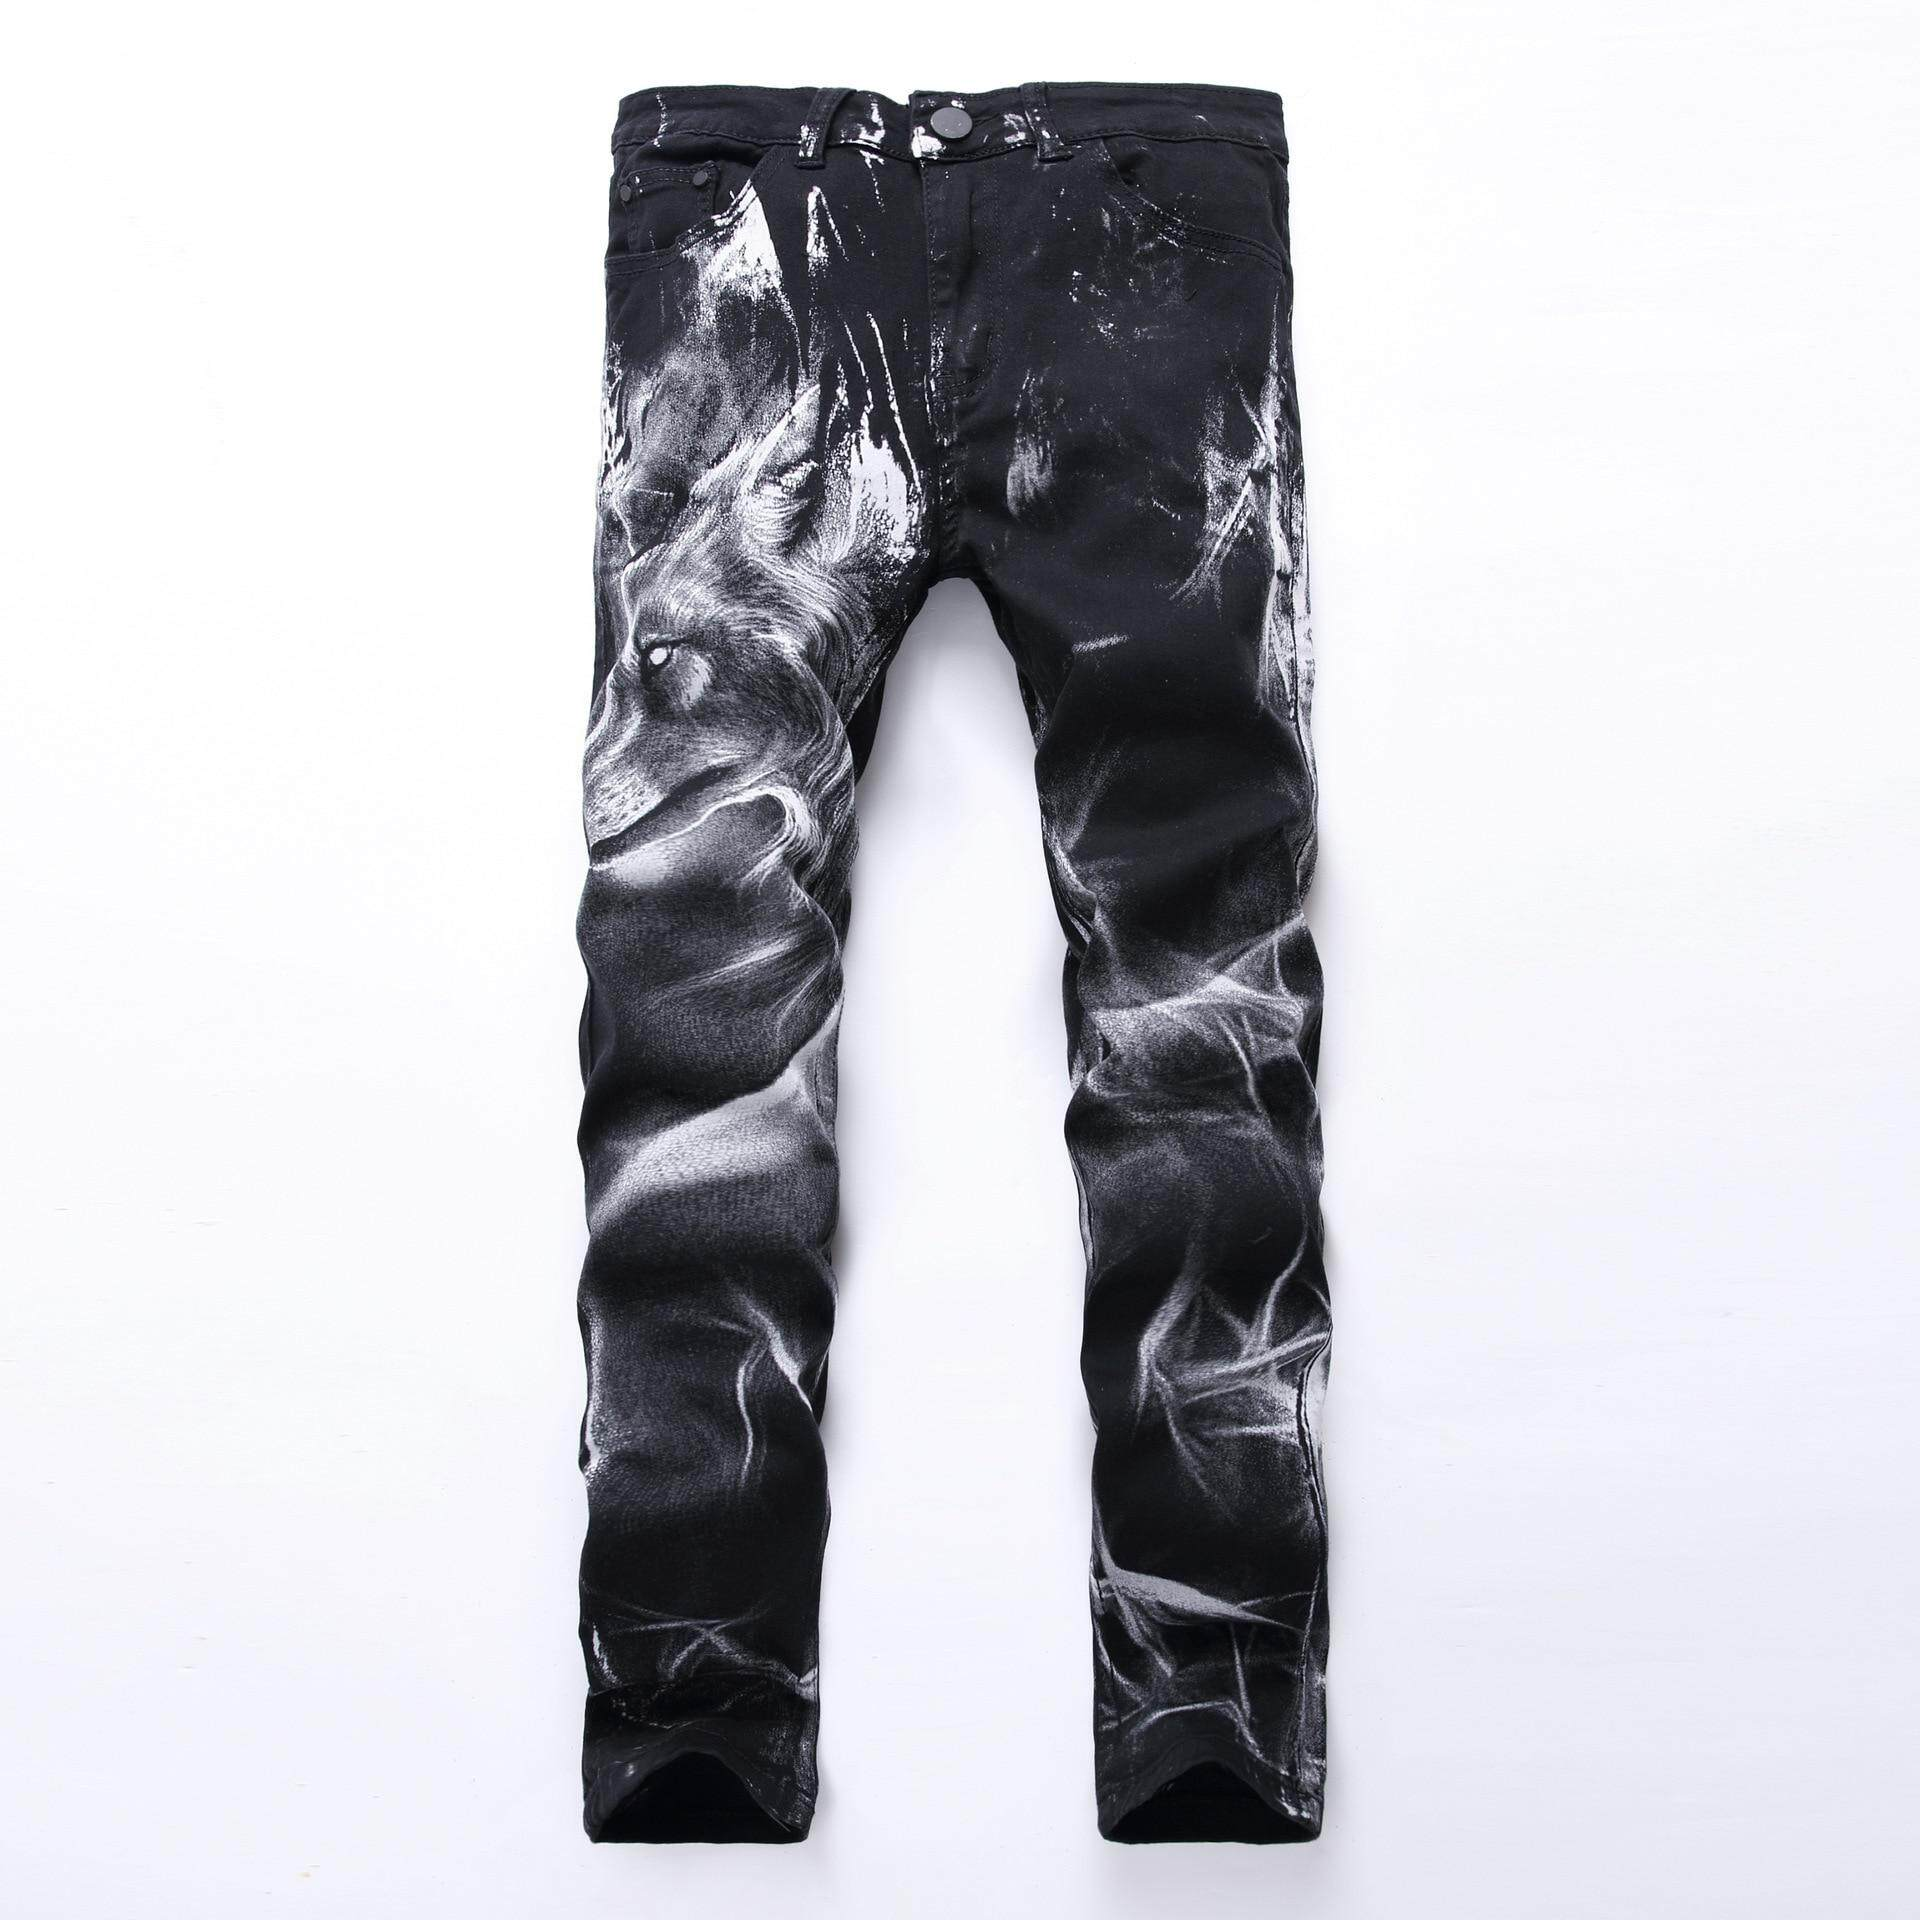 Street Wear HIP HOP Punk Denim Mens Stretch Jeans Skinny 2019 New Brand Casual Trousers Pencil Spring Clothes Streetwear